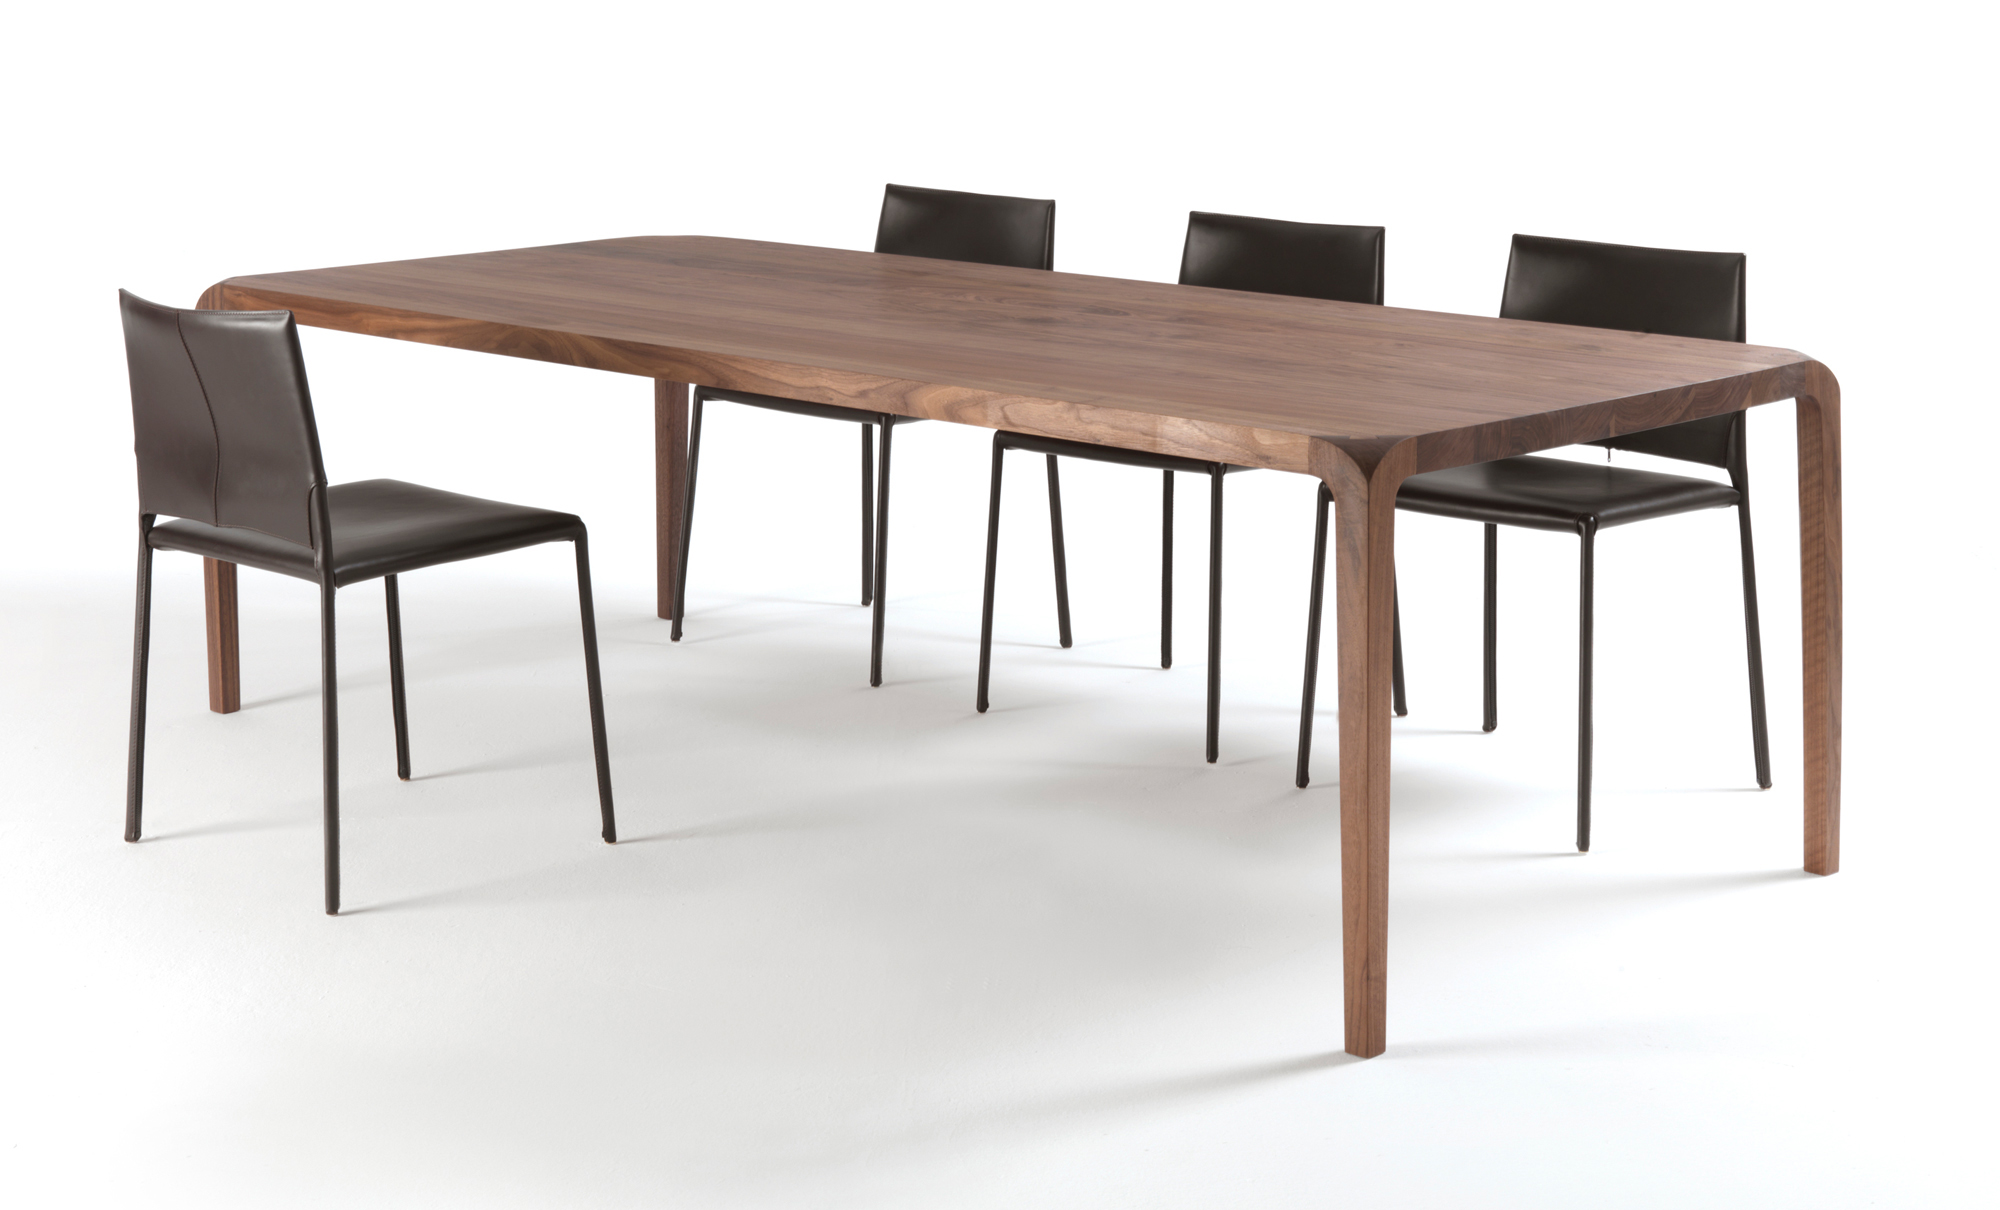 sleek dining table description the sleek dining table is italian made